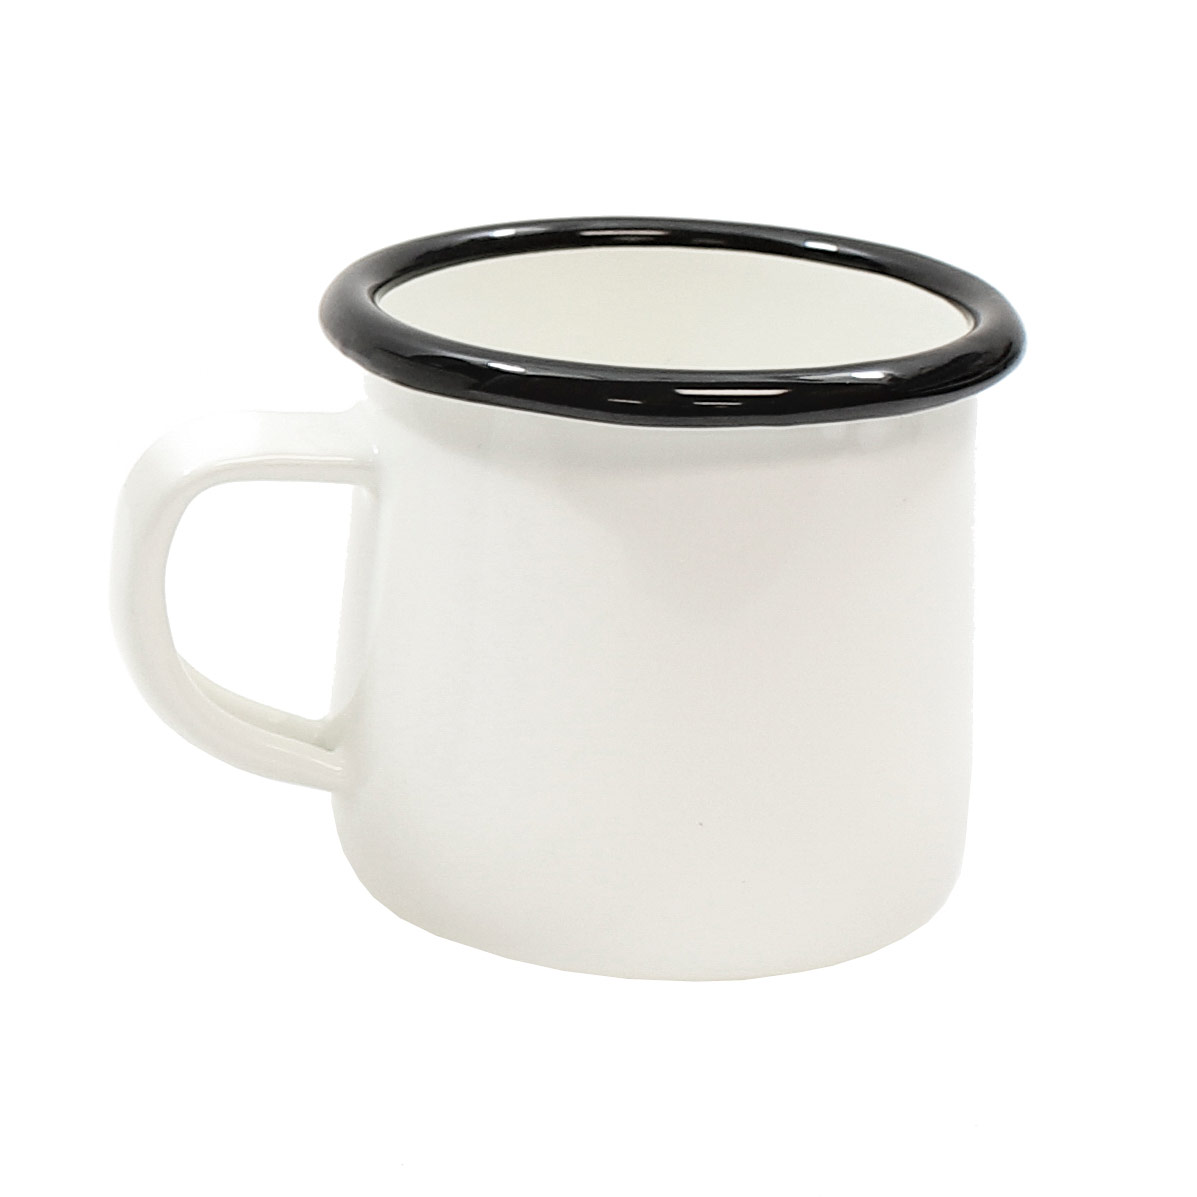 TableCraft Products 80010 cups, metal